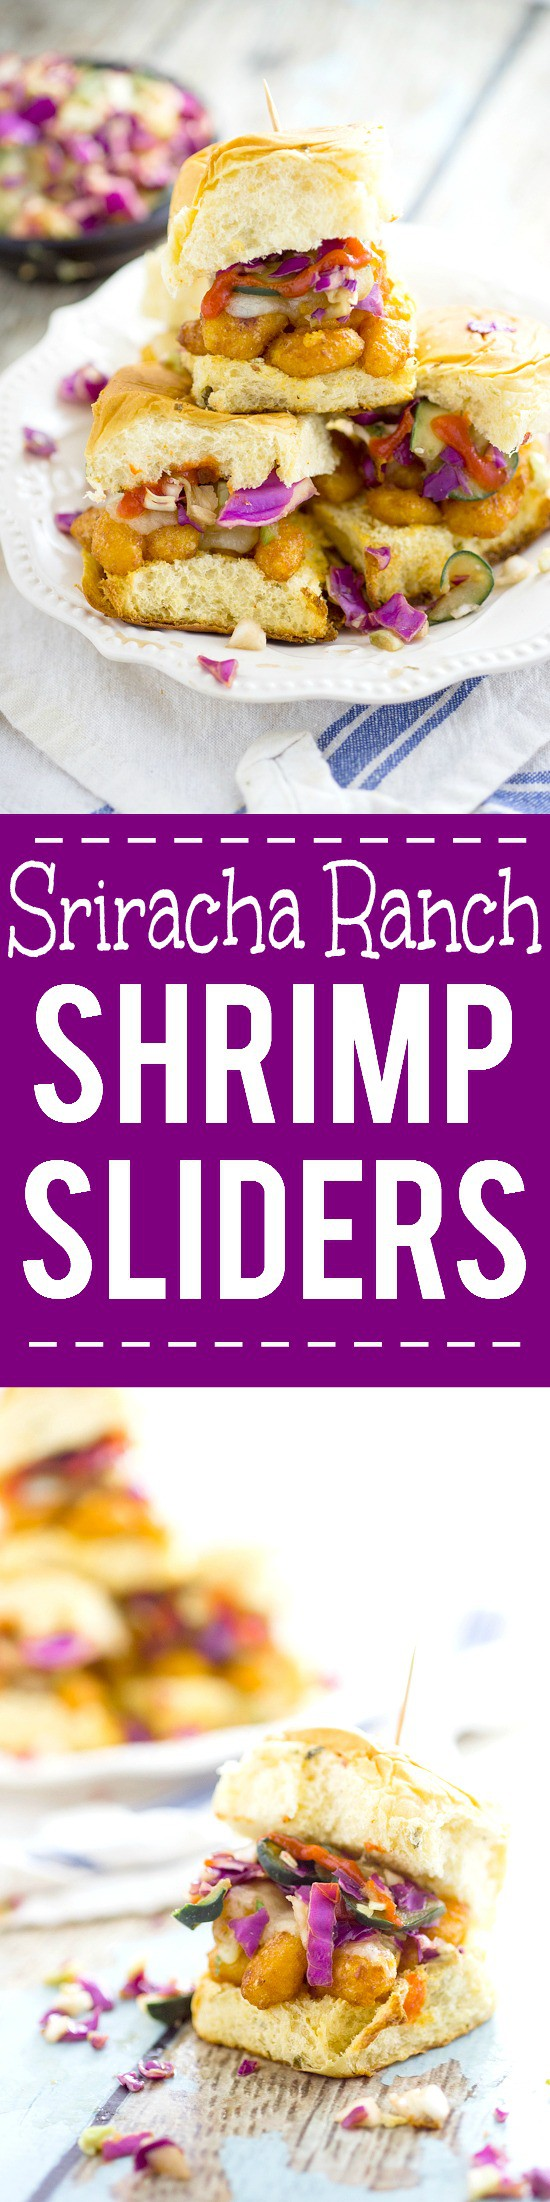 Sriracha Ranch Popcorn Shrimp Sliders recipe - a quick and easy dinner recipe and a classic-gone-coastal, these zesty Sriracha Ranch Popcorn Shrimp Sliders topped with cheese and a cool, crisp fresh slaw are a perfect quick and easy Summer dinner recipe.